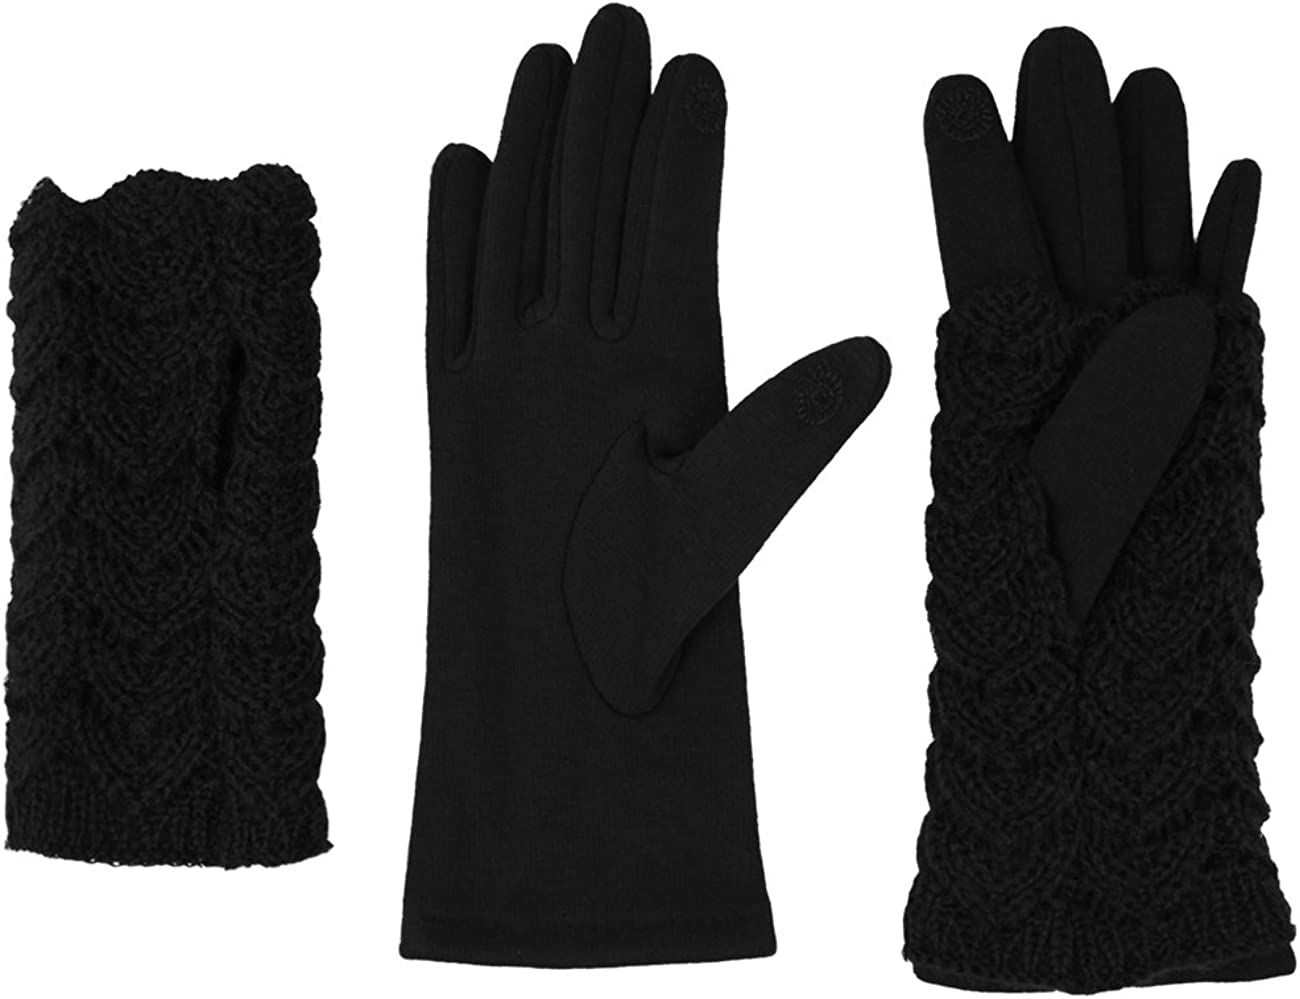 Dahlia 2 in 1 Touchscreen Gloves for H with Women Lined Seattle Mall Fleece Ranking TOP3 -